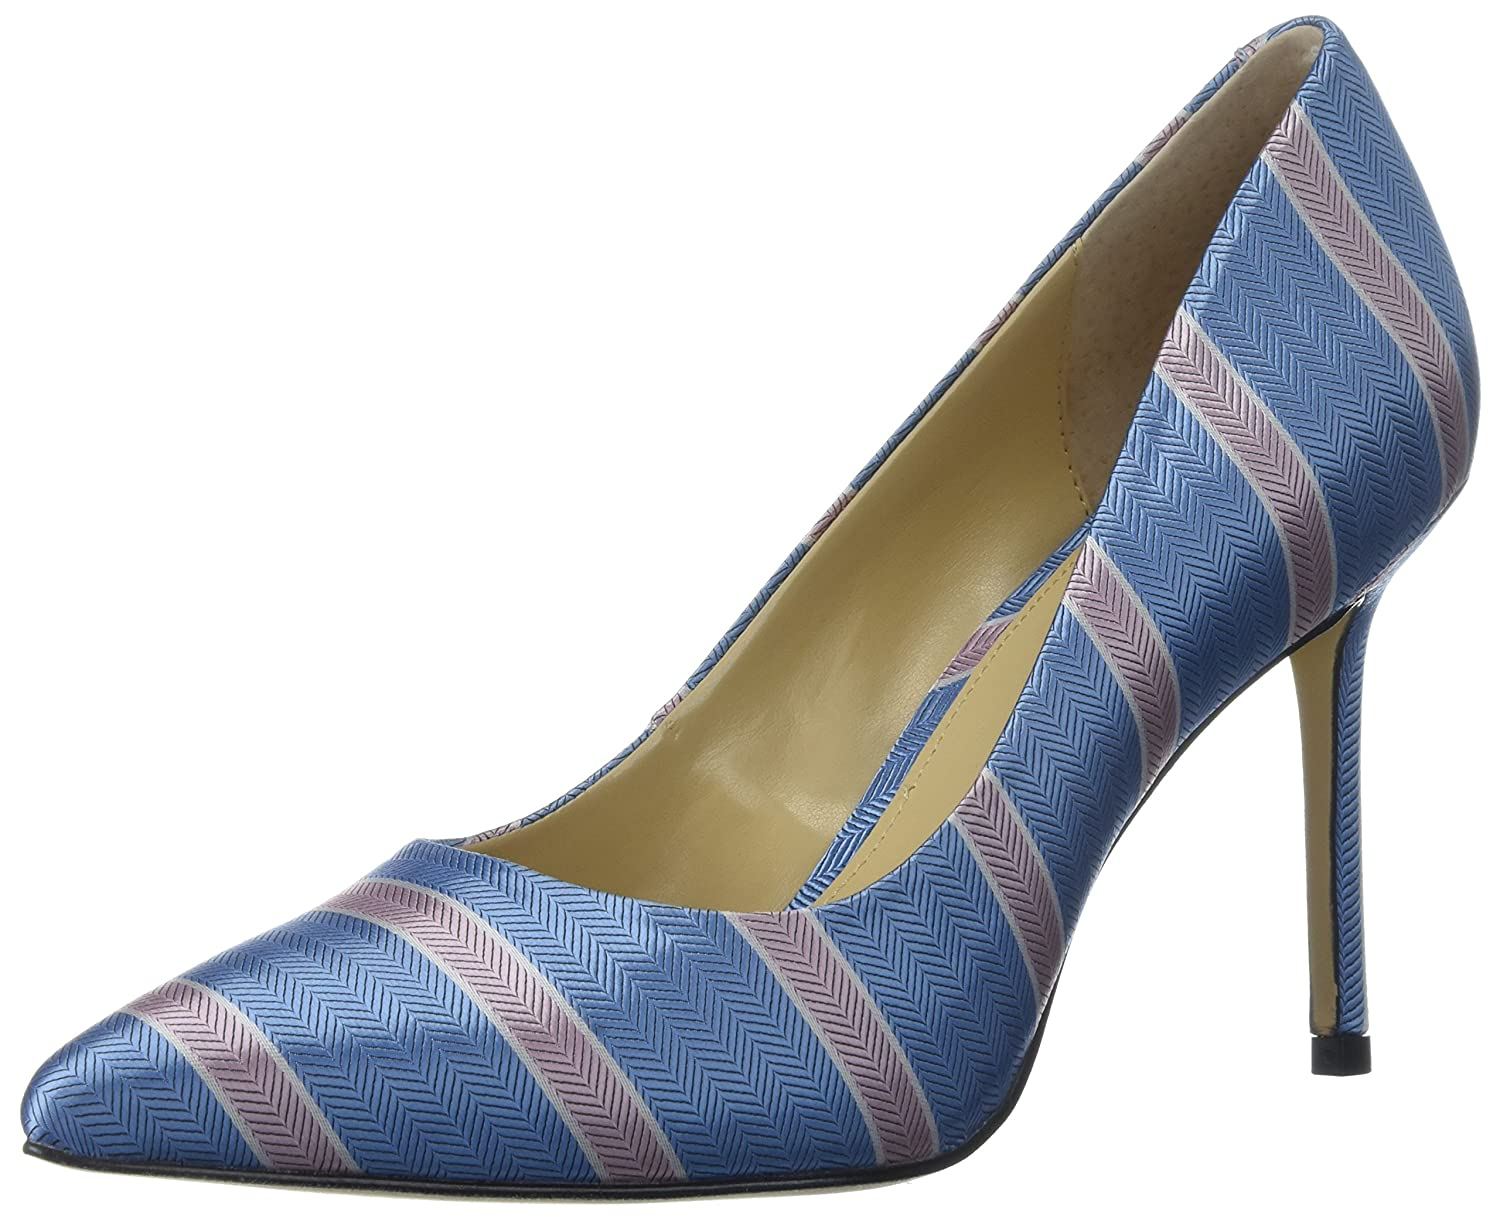 Katy Perry Women's The Sissy Pump B073HCY8GD 7 B(M) US|Blue/Multi